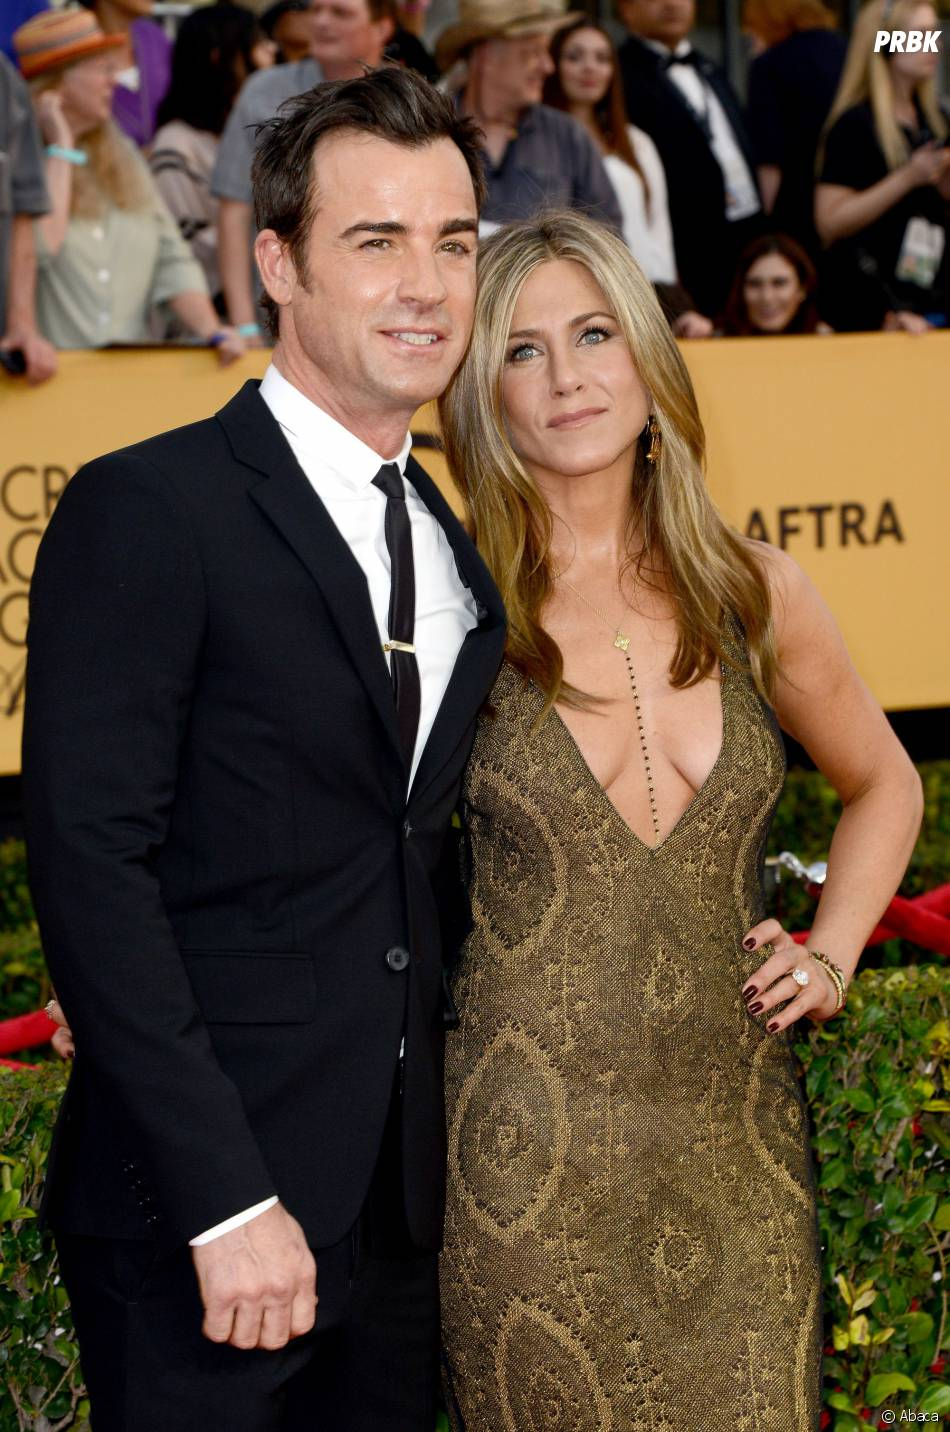 Jennifer Aniston sexy et son fiancé Justin Theroux aux SAG Awards 2015, le 25 janvier 2015 à Los Angeles